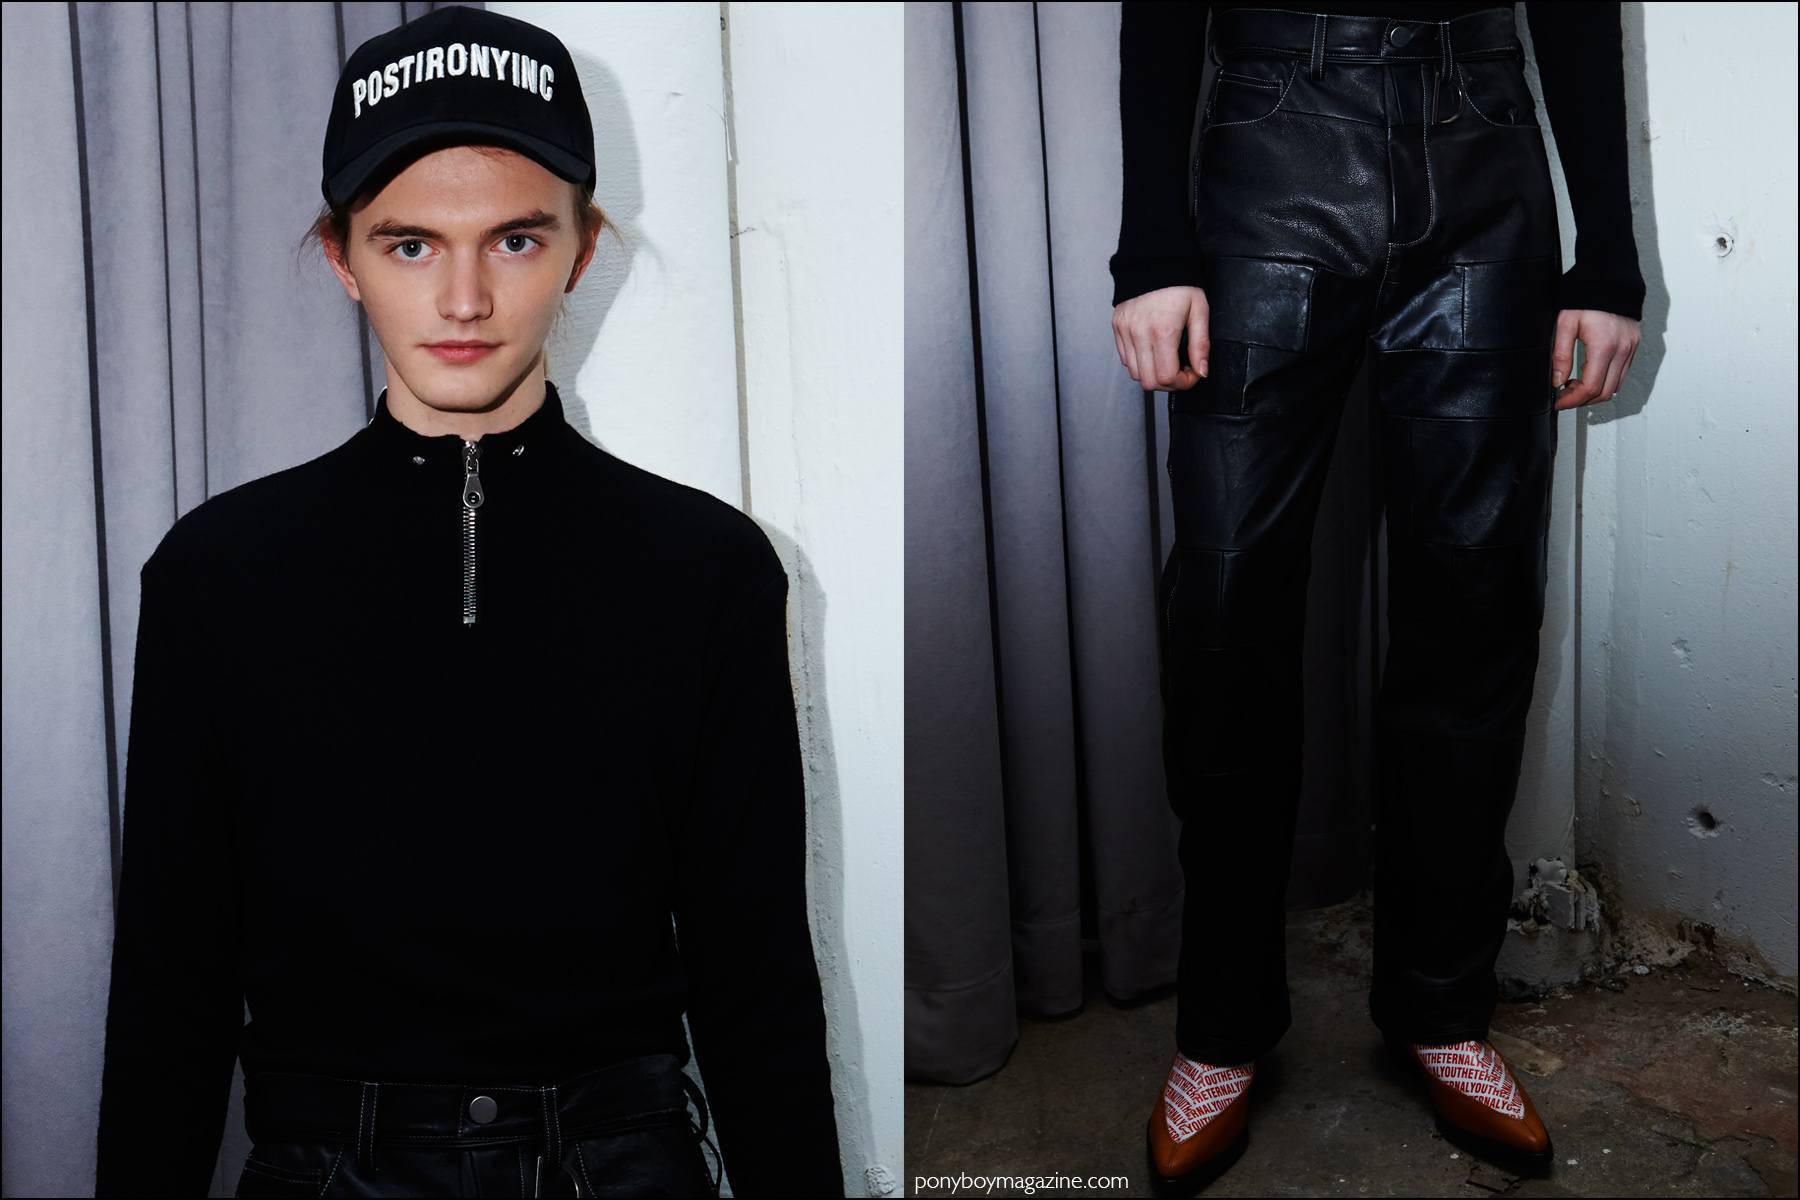 A male model photographed in a zip front top and leather trousers, backstage at Devon Halfnight Leflufy F/W16 menswear show. Photography by Alexander Thompson for Ponyboy magazine NY.